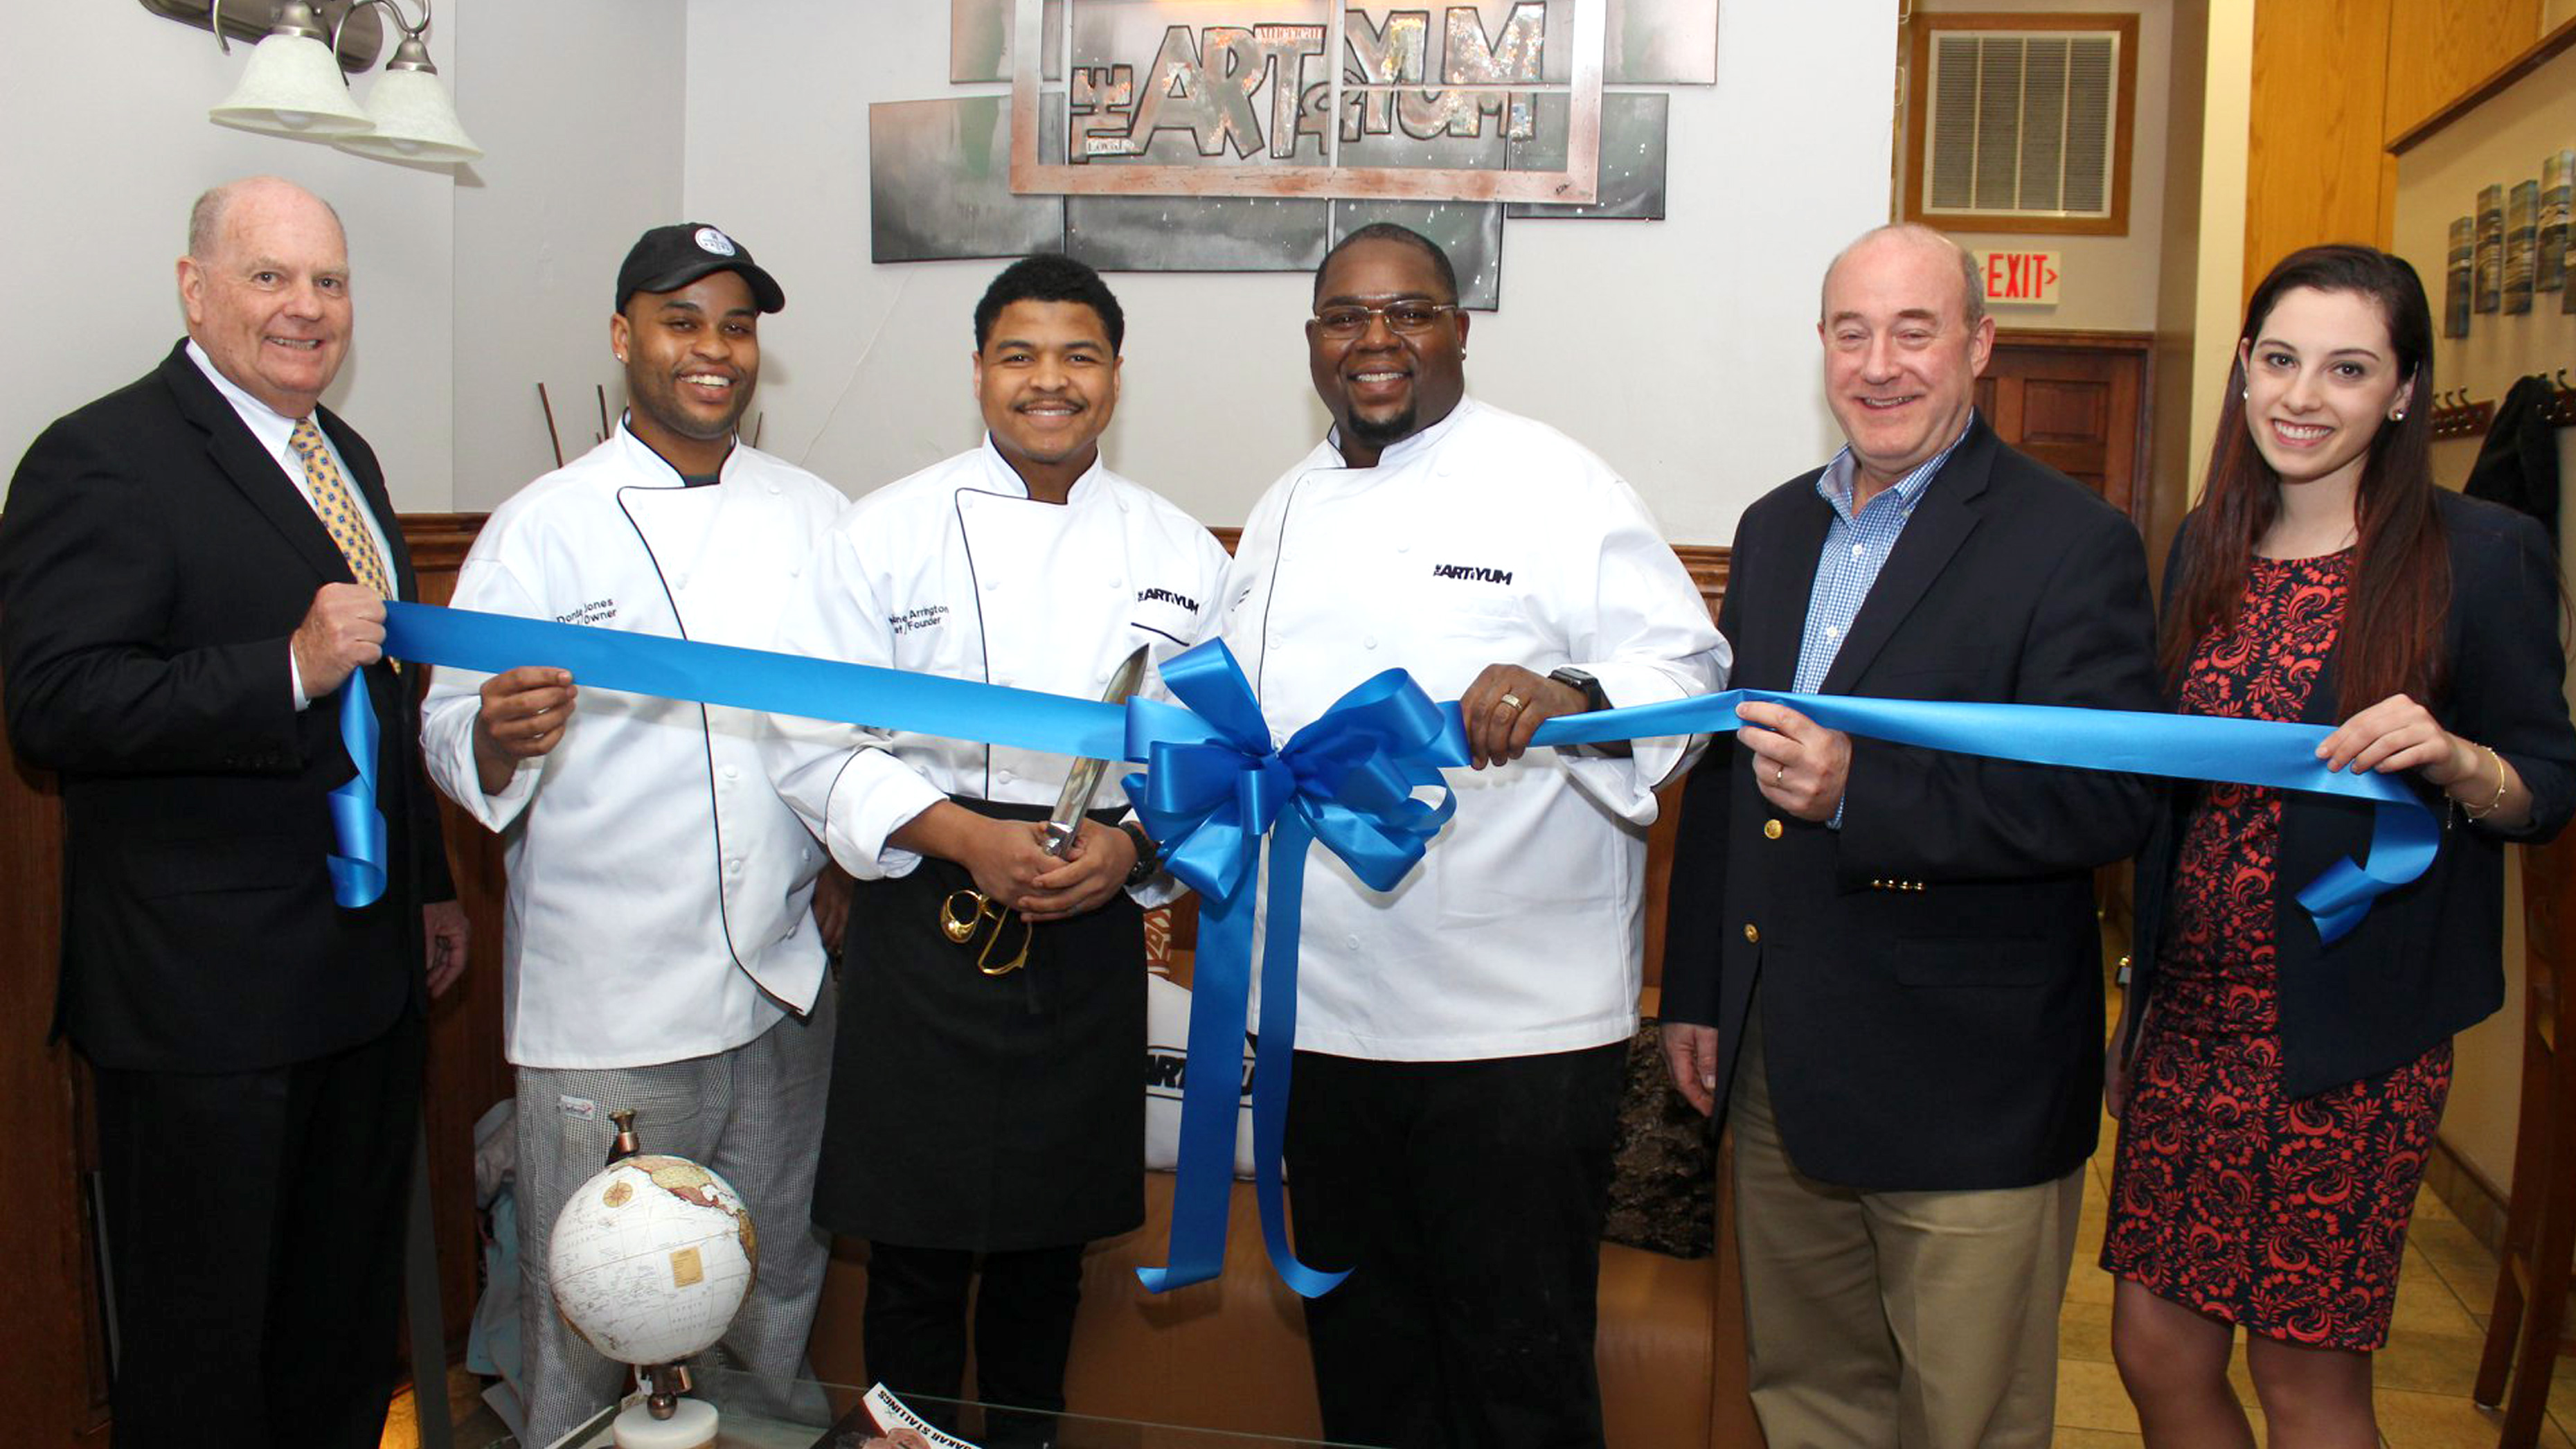 Ribbon cutting ceremony for the opening of The Art Of Yum in 2019